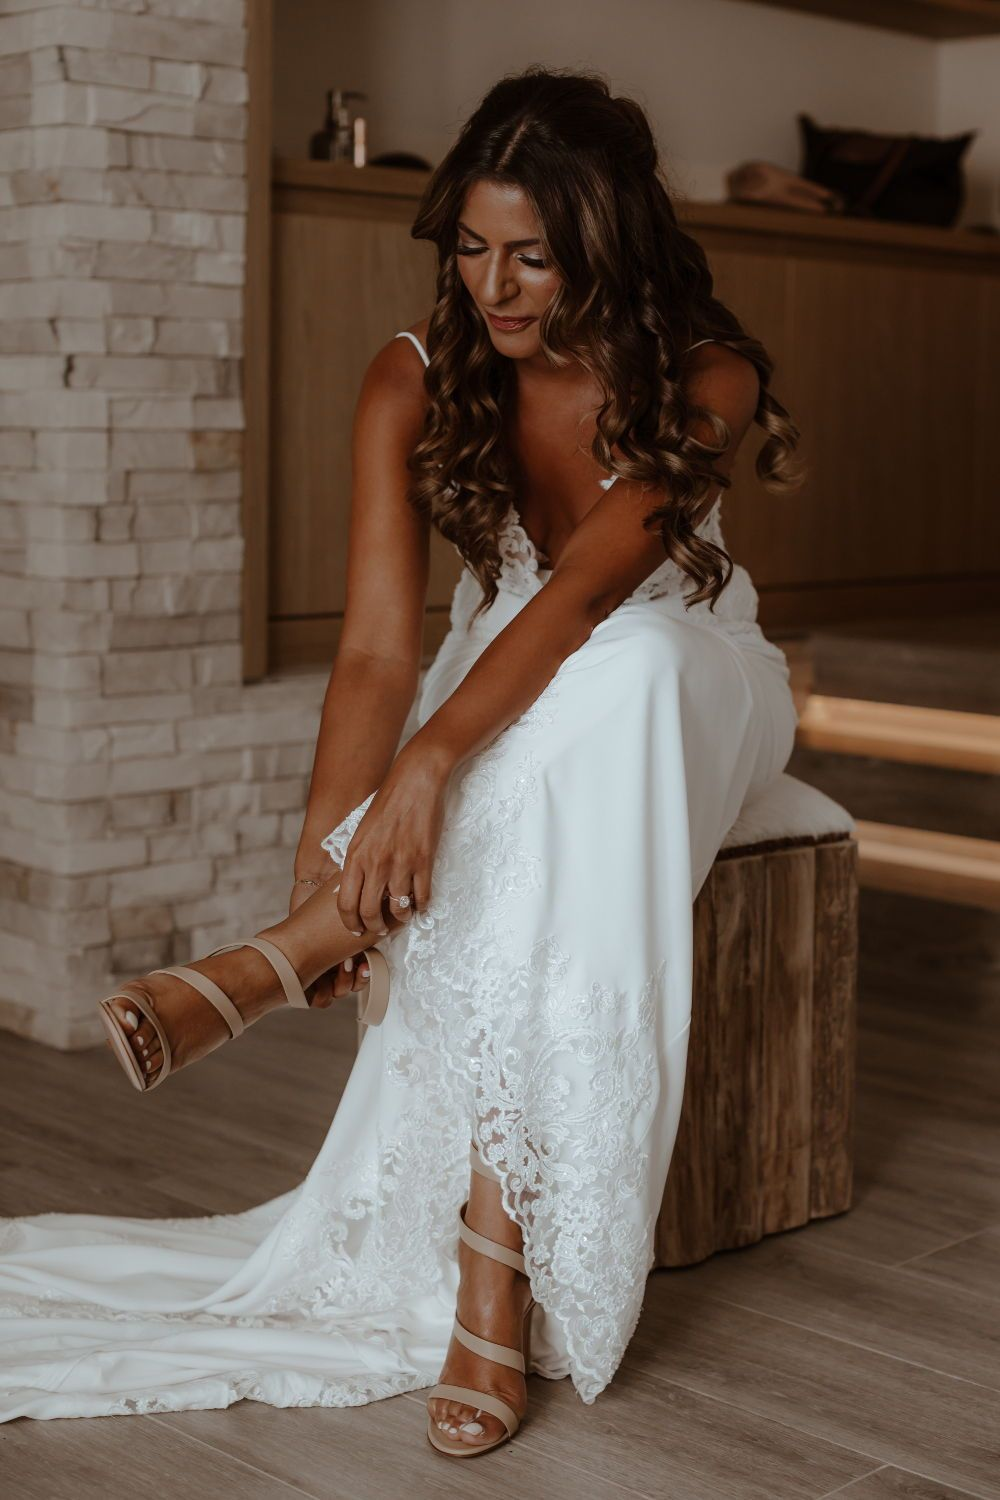 Crepe and lace wedding dress. Simple and low back wedding